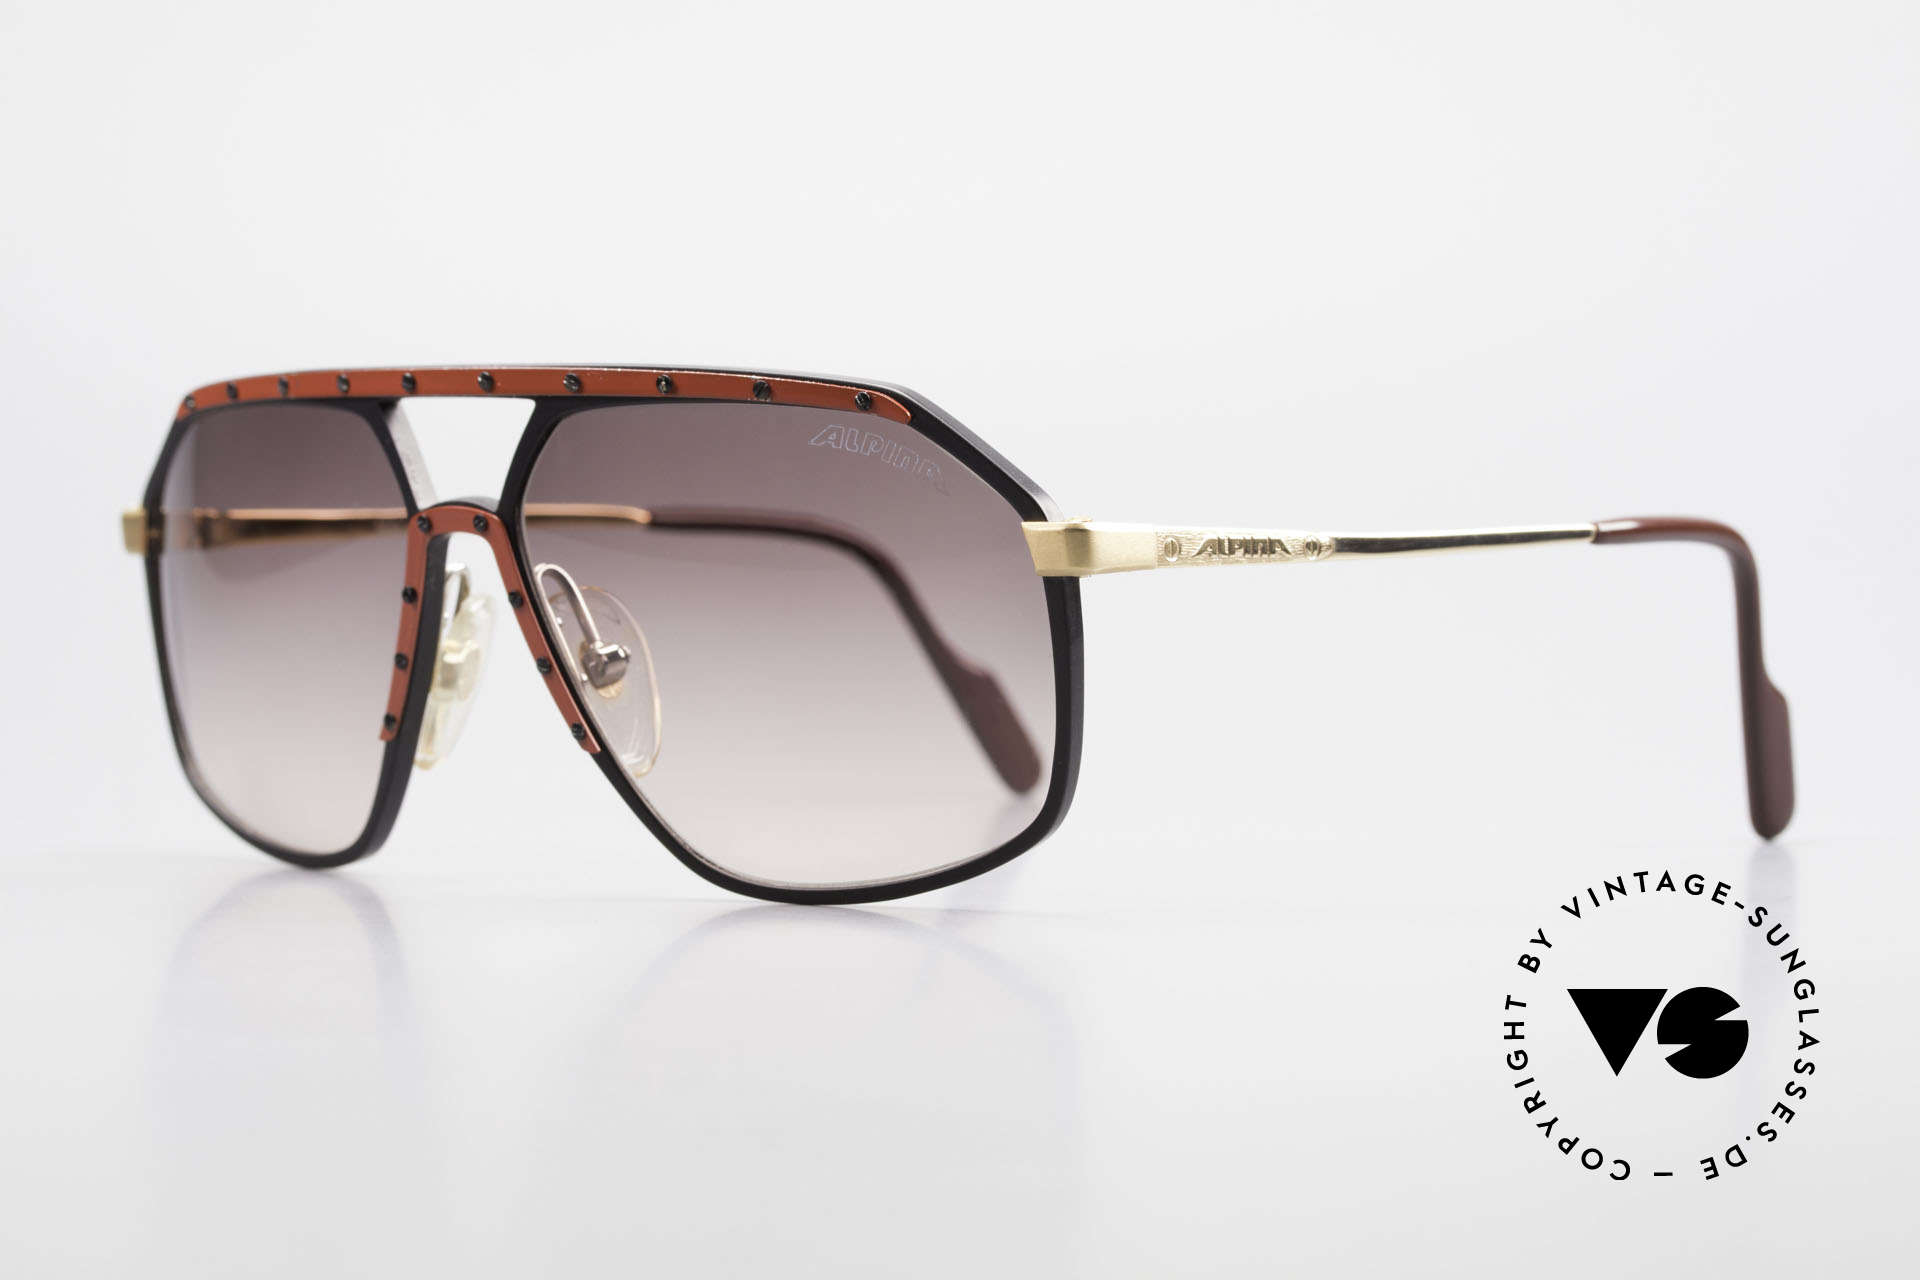 Alpina M6 Rare 80's Vintage Sunglasses, HANDMADE produced in many different variations, Made for Men and Women